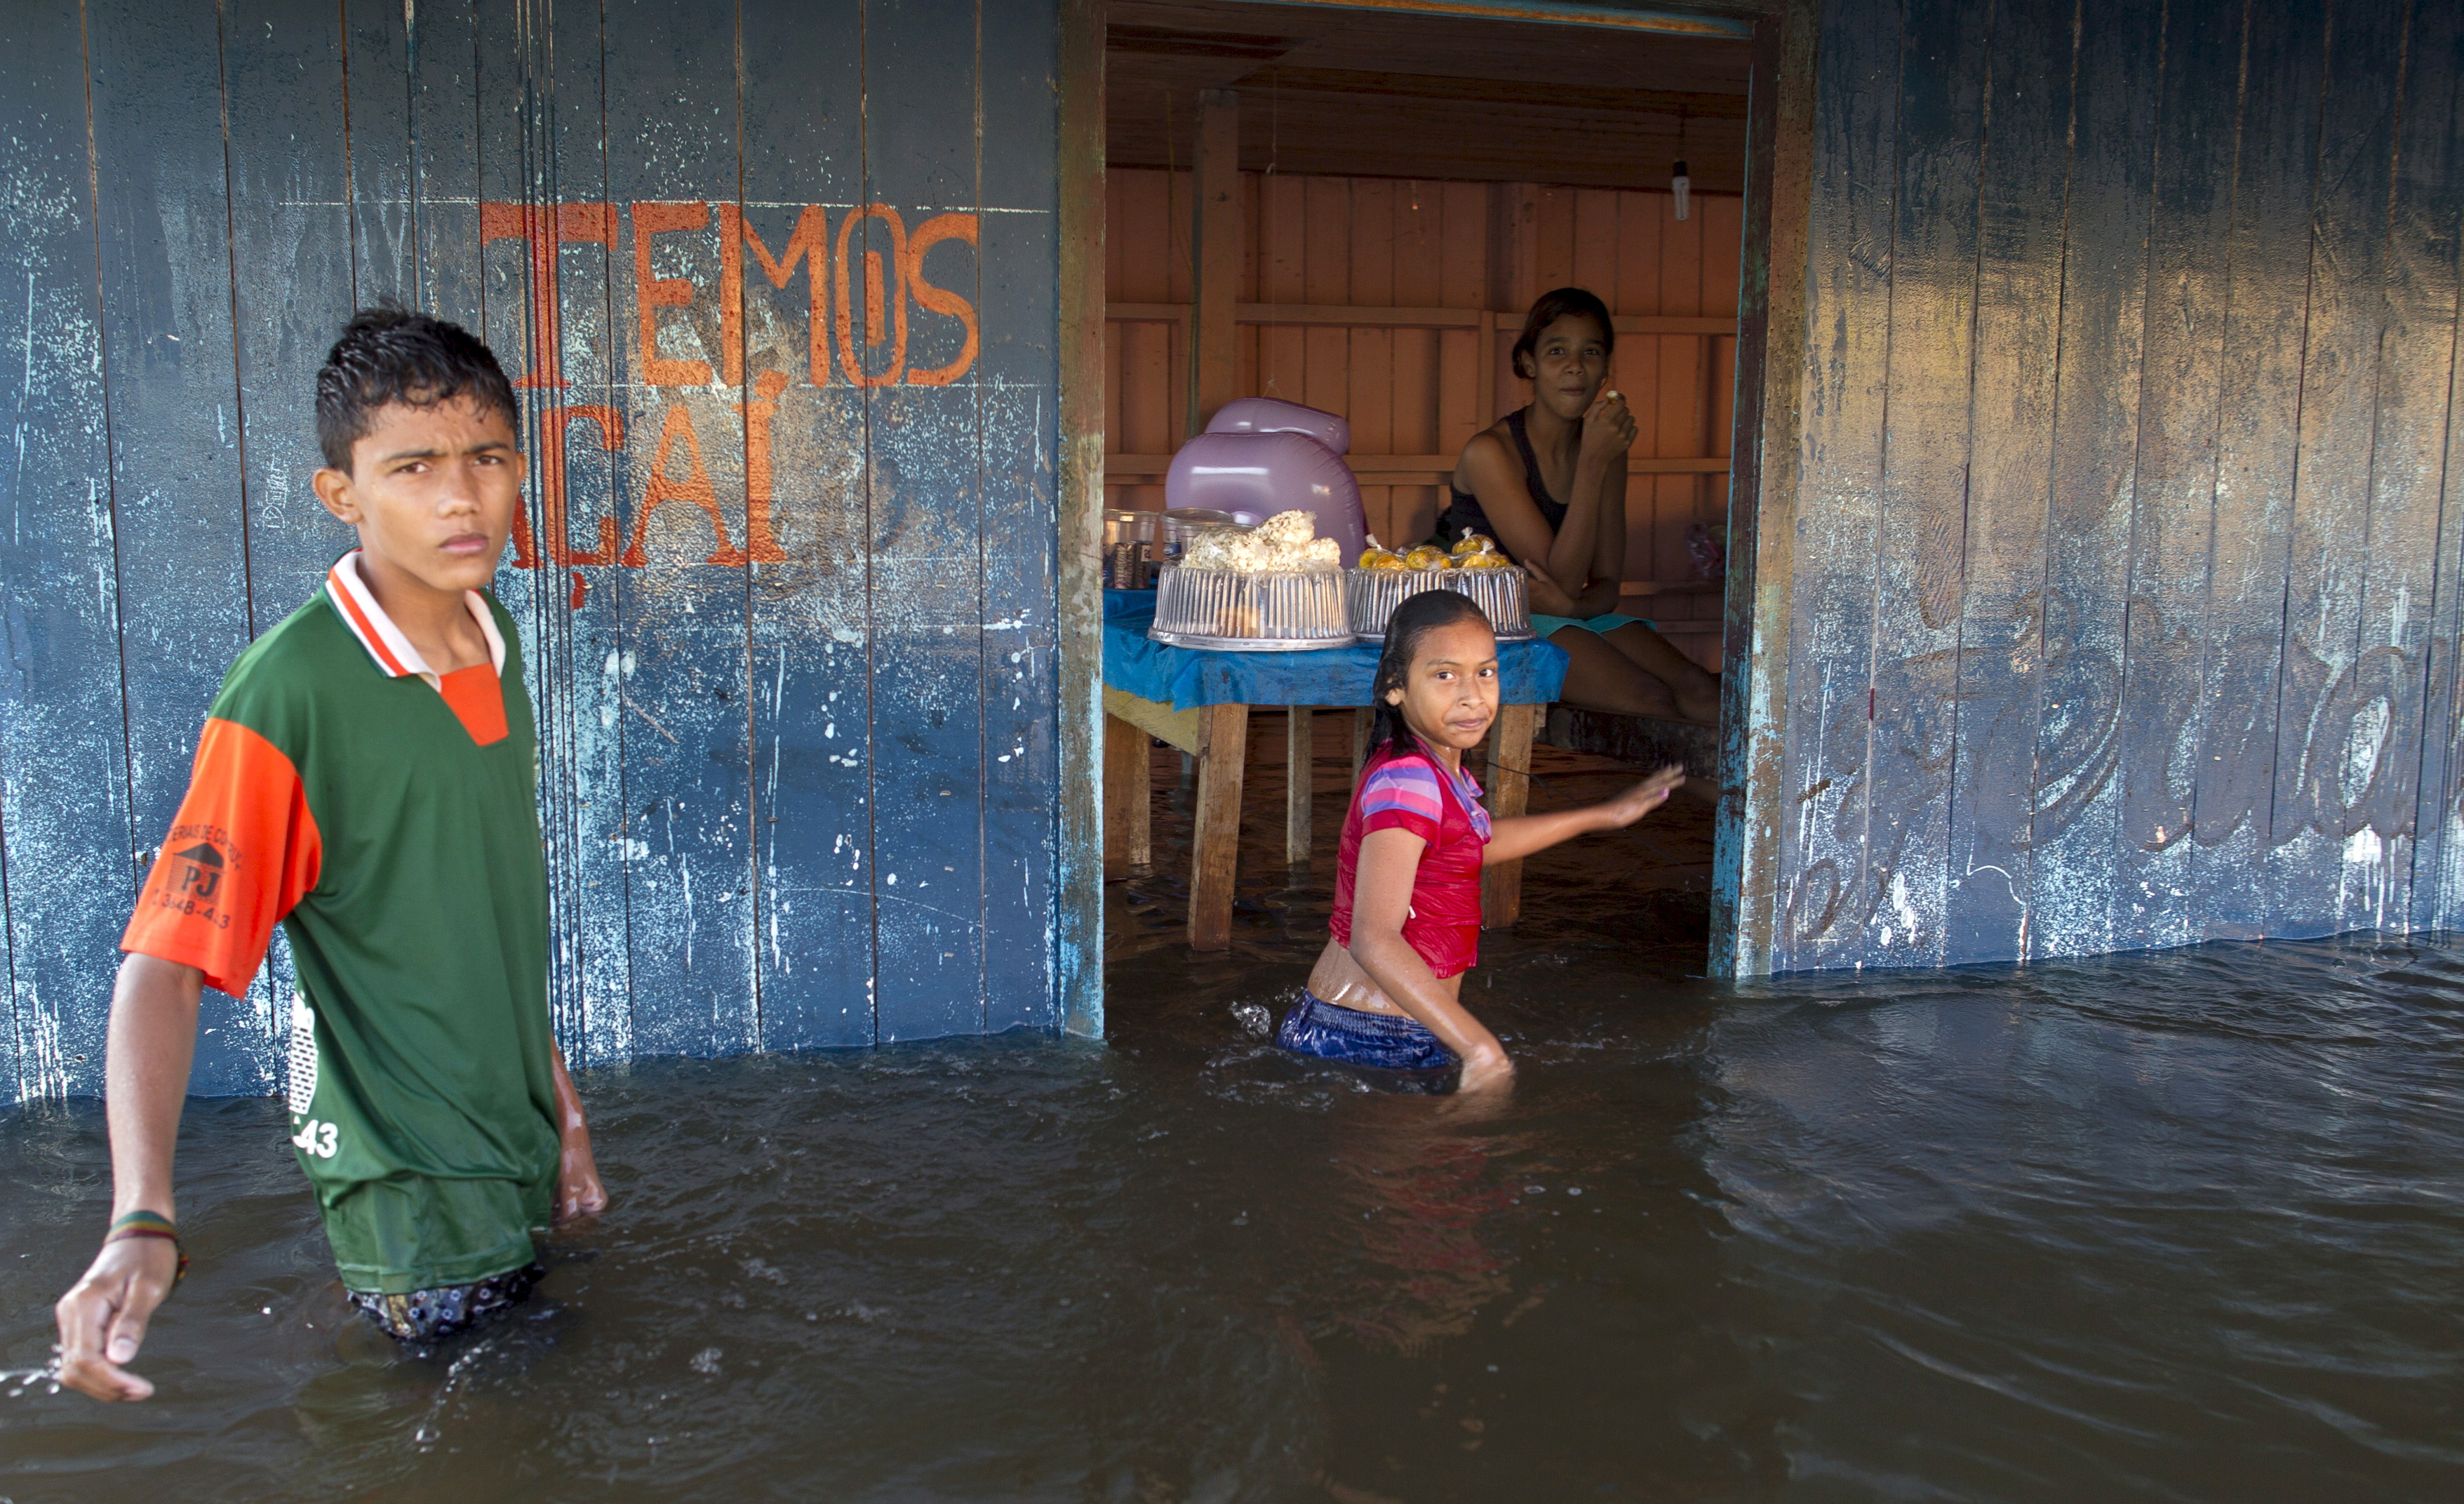 Children walk in front of a small bar in a street flooded by the rising Rio Solimoes, one of the two main branches of the Amazon River, in Anama, Amazonas state, Brazil on June 3, 2015. Photo by Bruno Kelly/Reuters